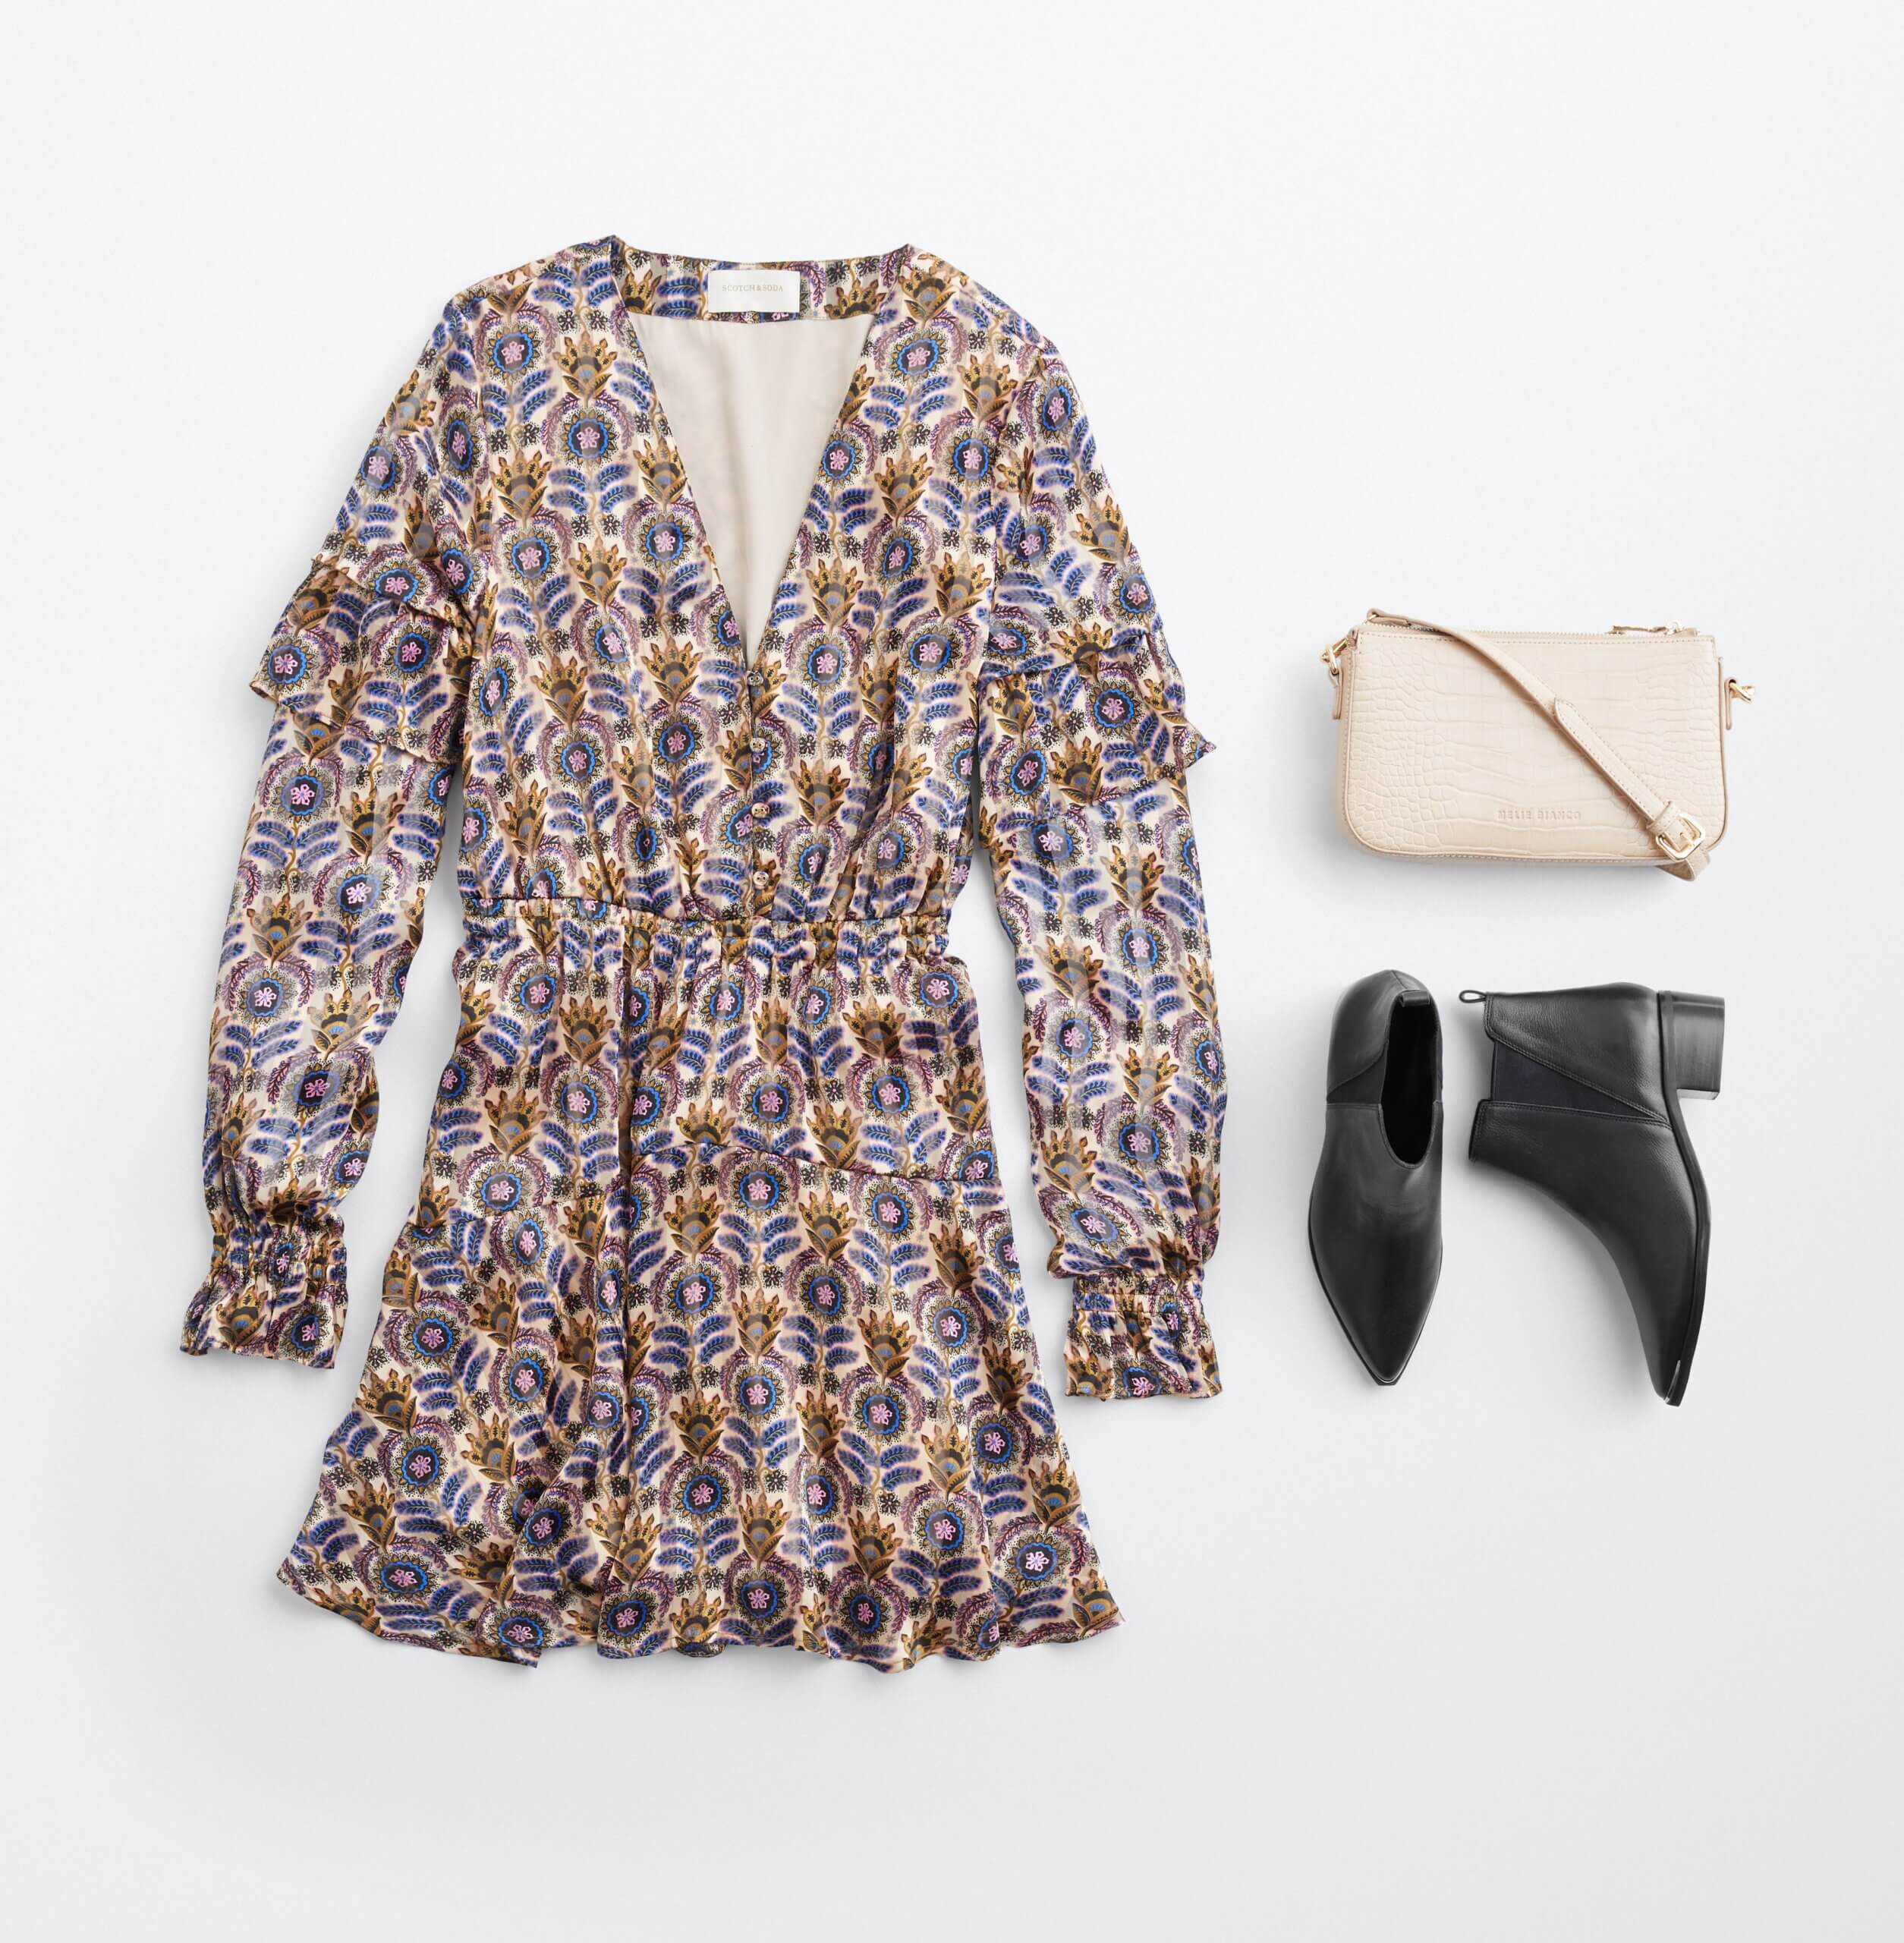 Stitch Fix Women's outfit laydown featuring beige, brown, blue and pink boho-print dress, cream crossbody purse and black leather booties.